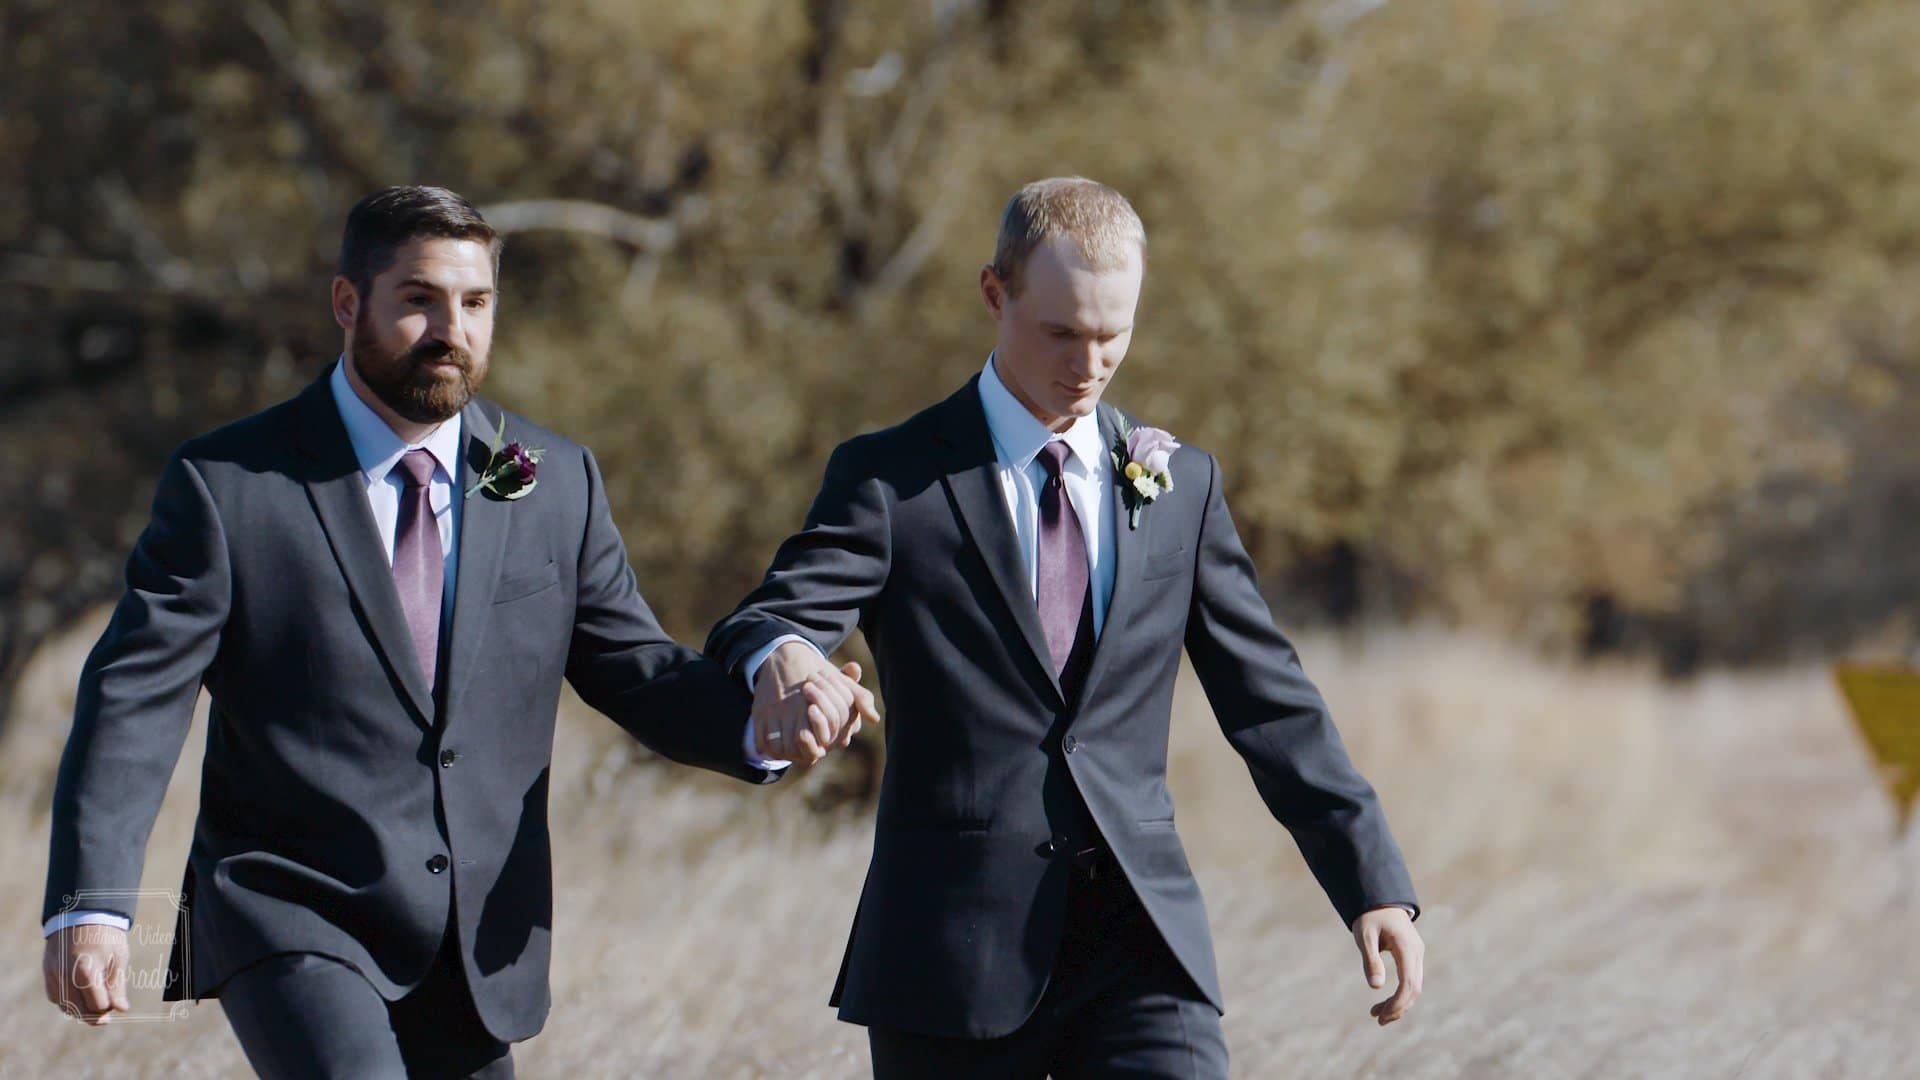 Sammy Emily Wedding Video Colorado